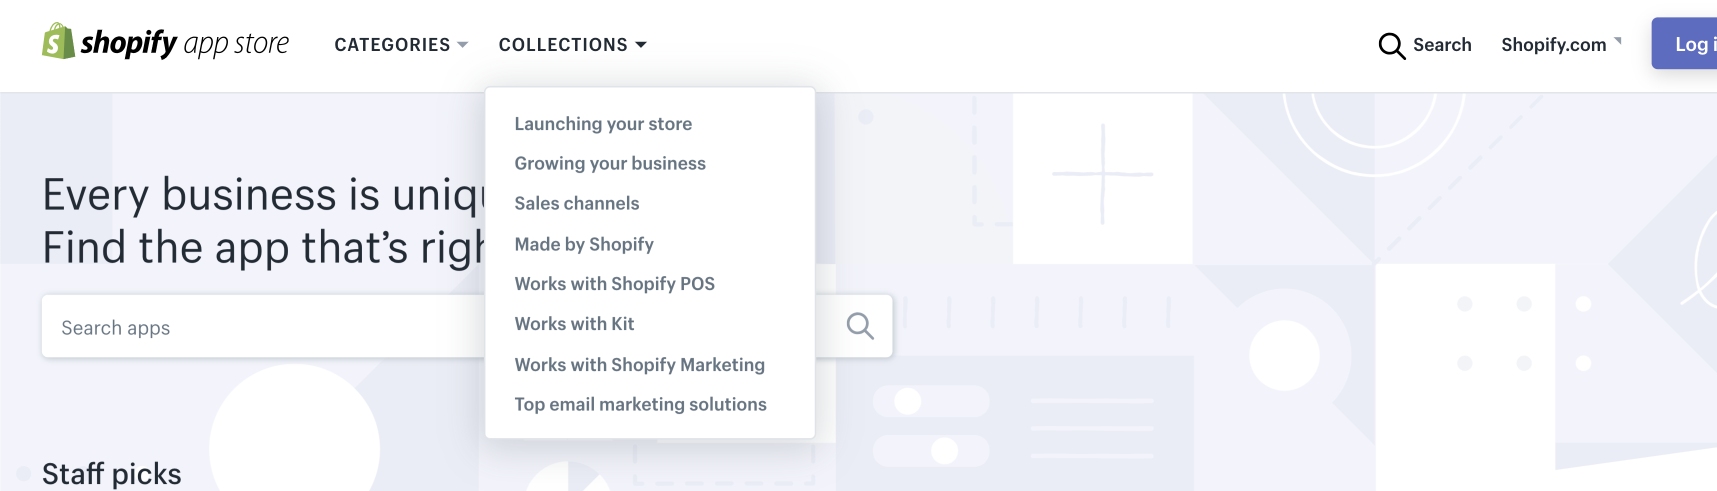 Shopify App Store Navigation Collections